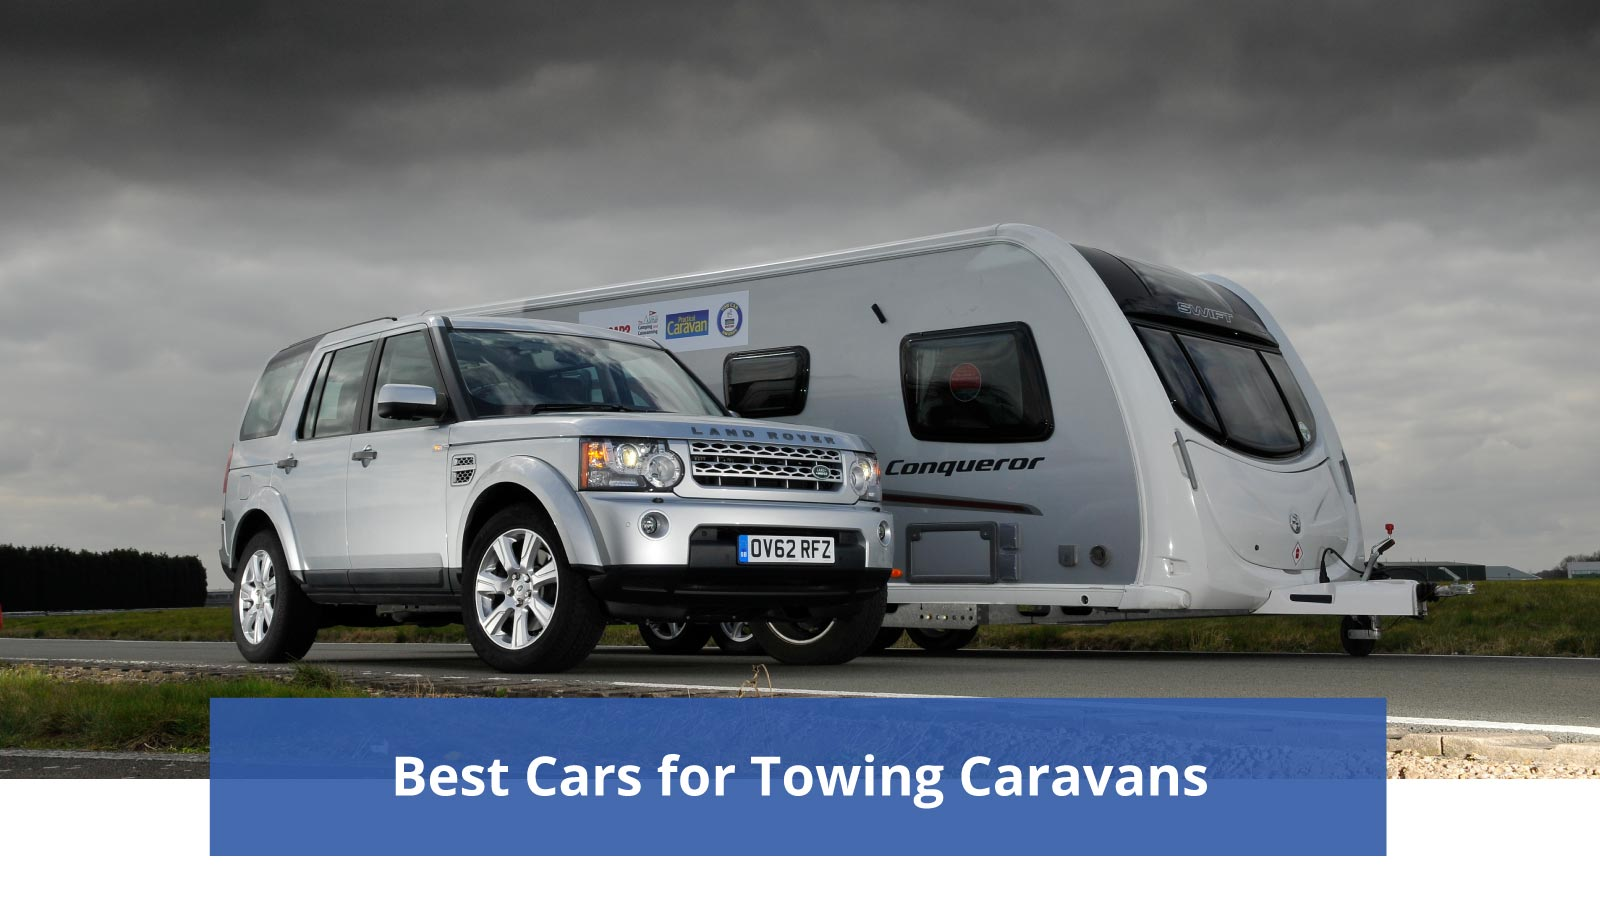 Best Used Cars for Towing Caravans